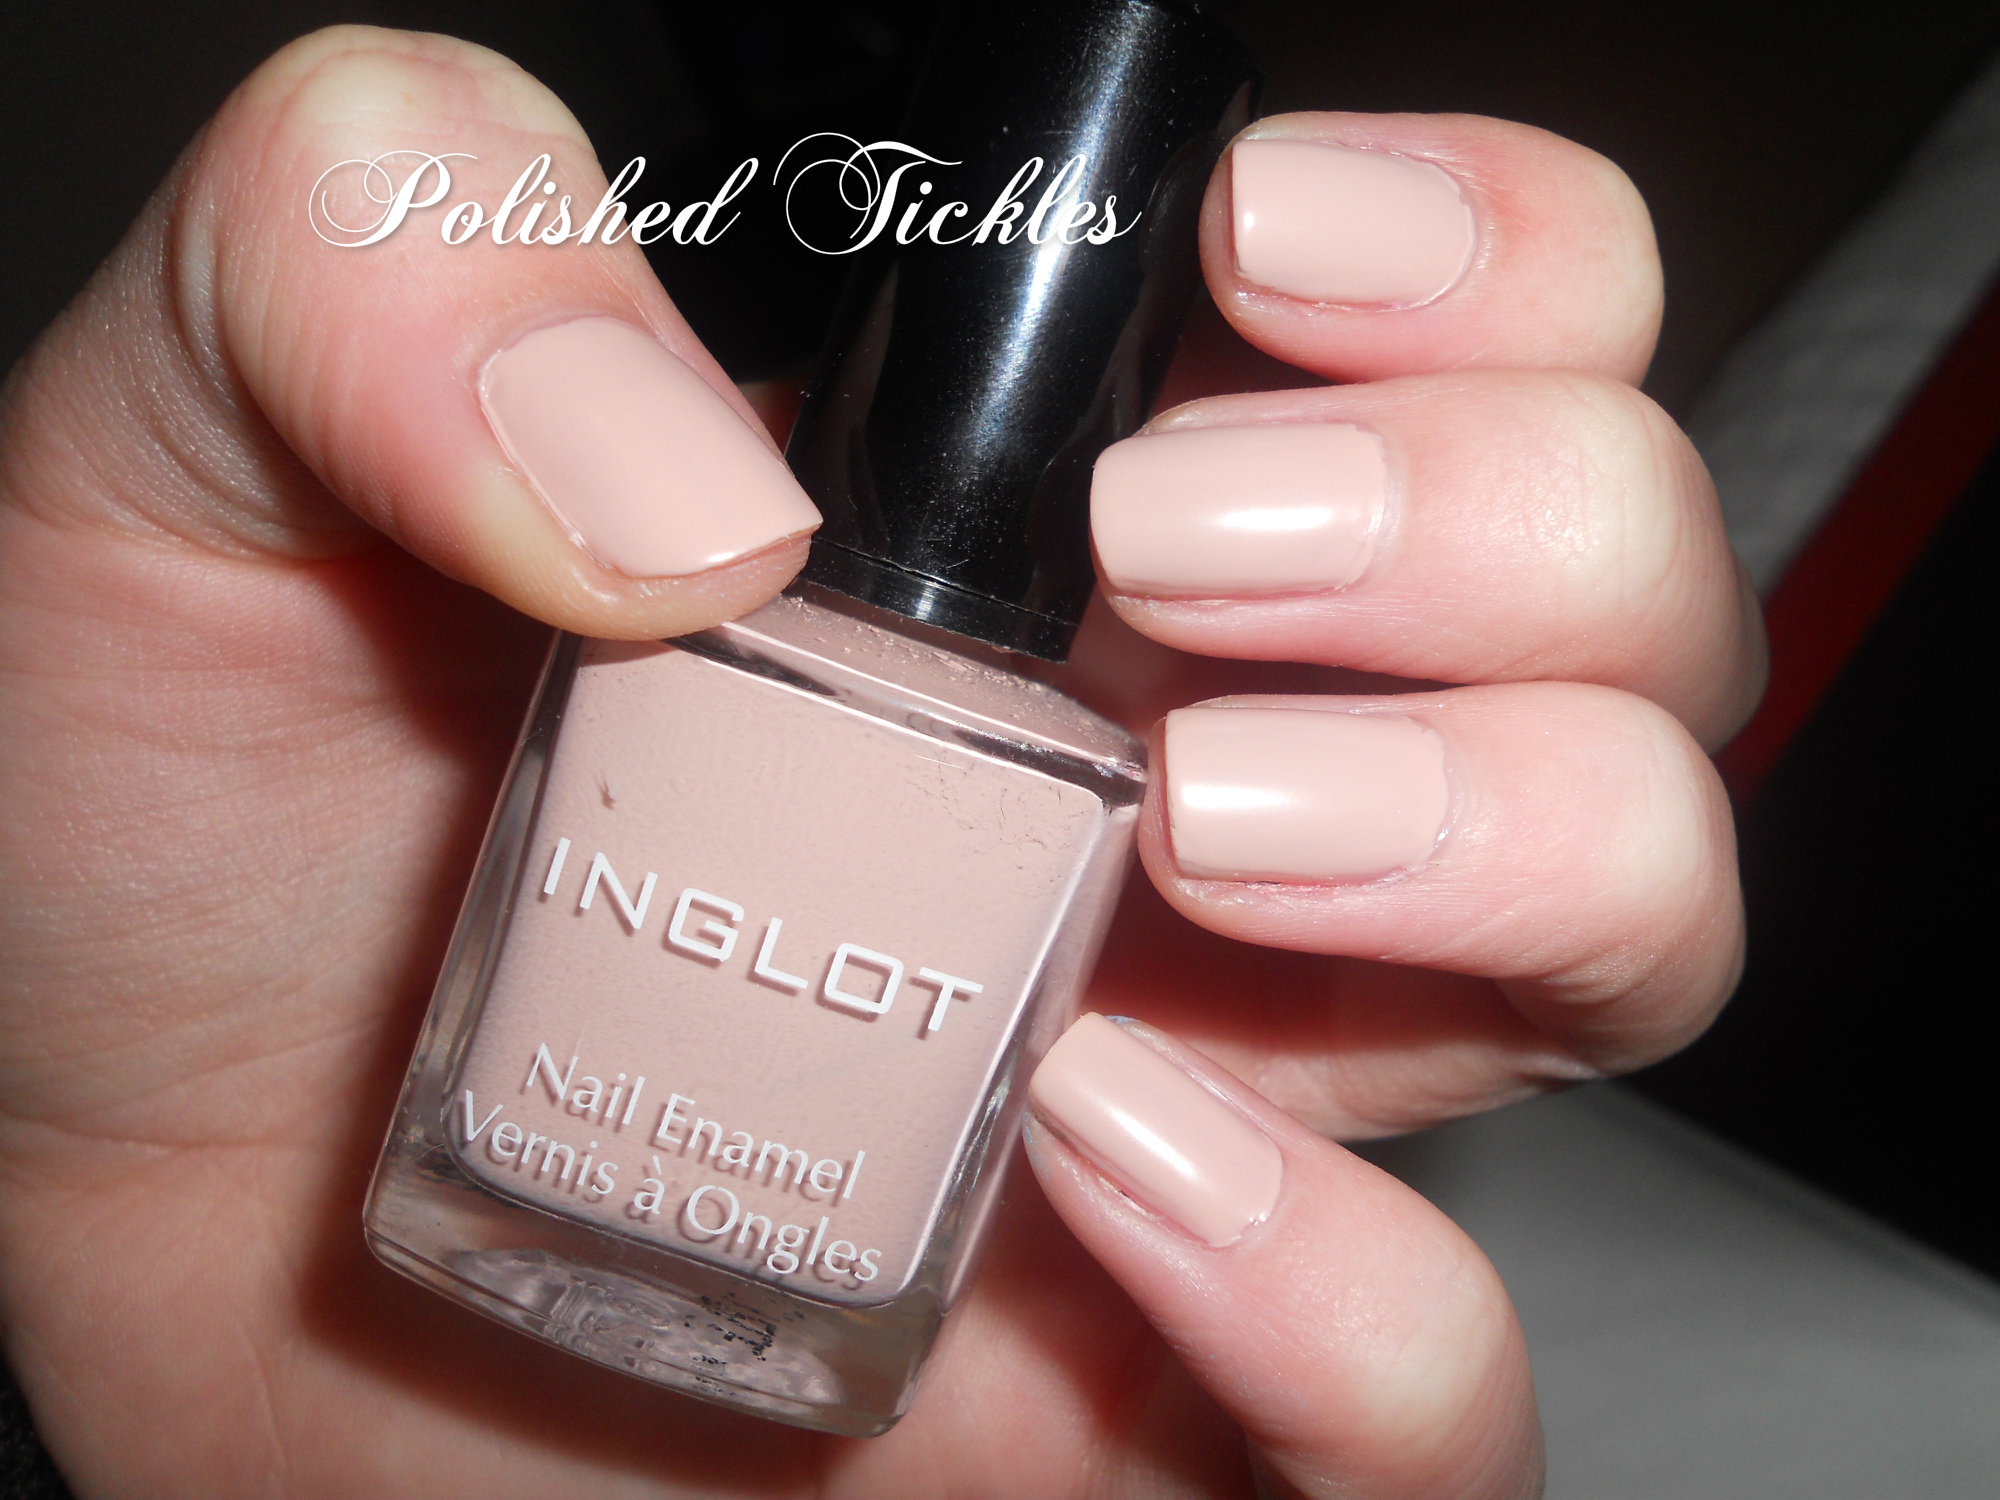 Inglot 715 Matte Nail Polish | Polished Tickles and Beauty